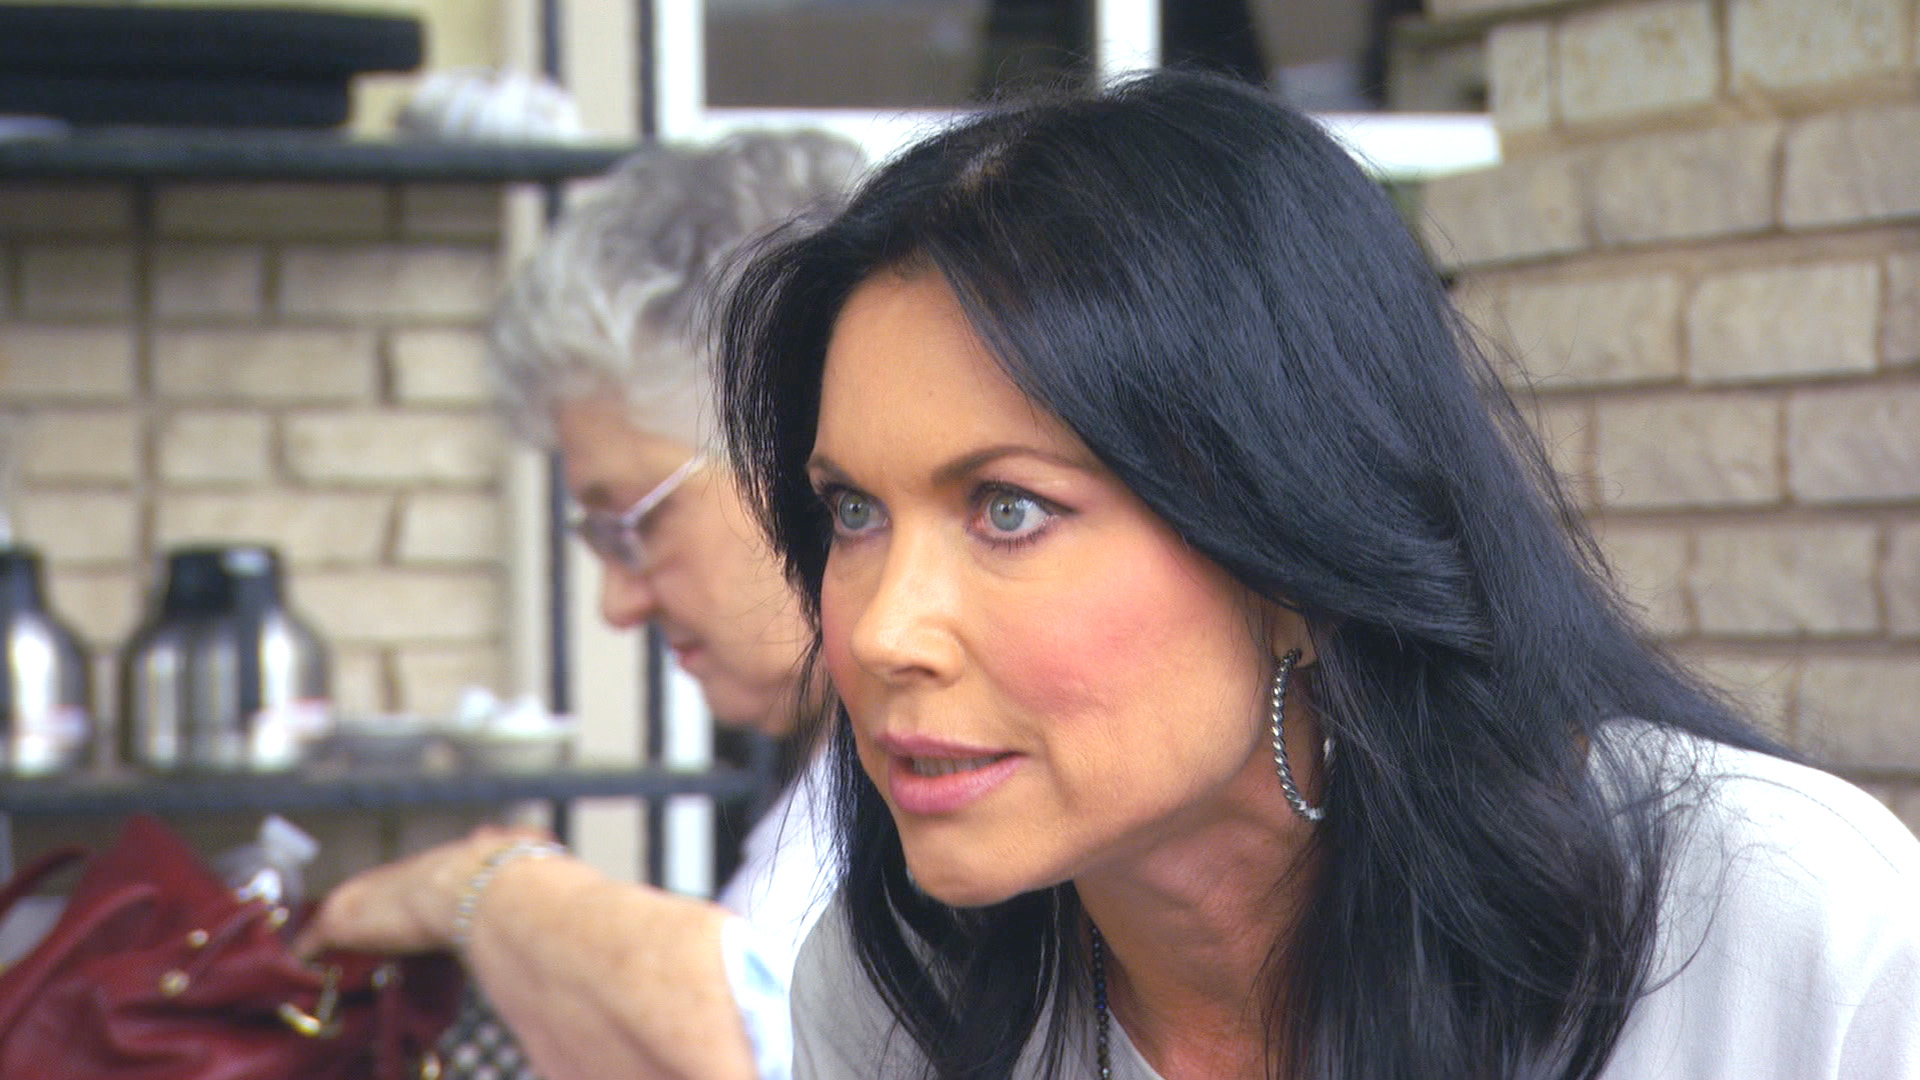 You Don't Even Effing Know LeeAnne Locken, Bitch